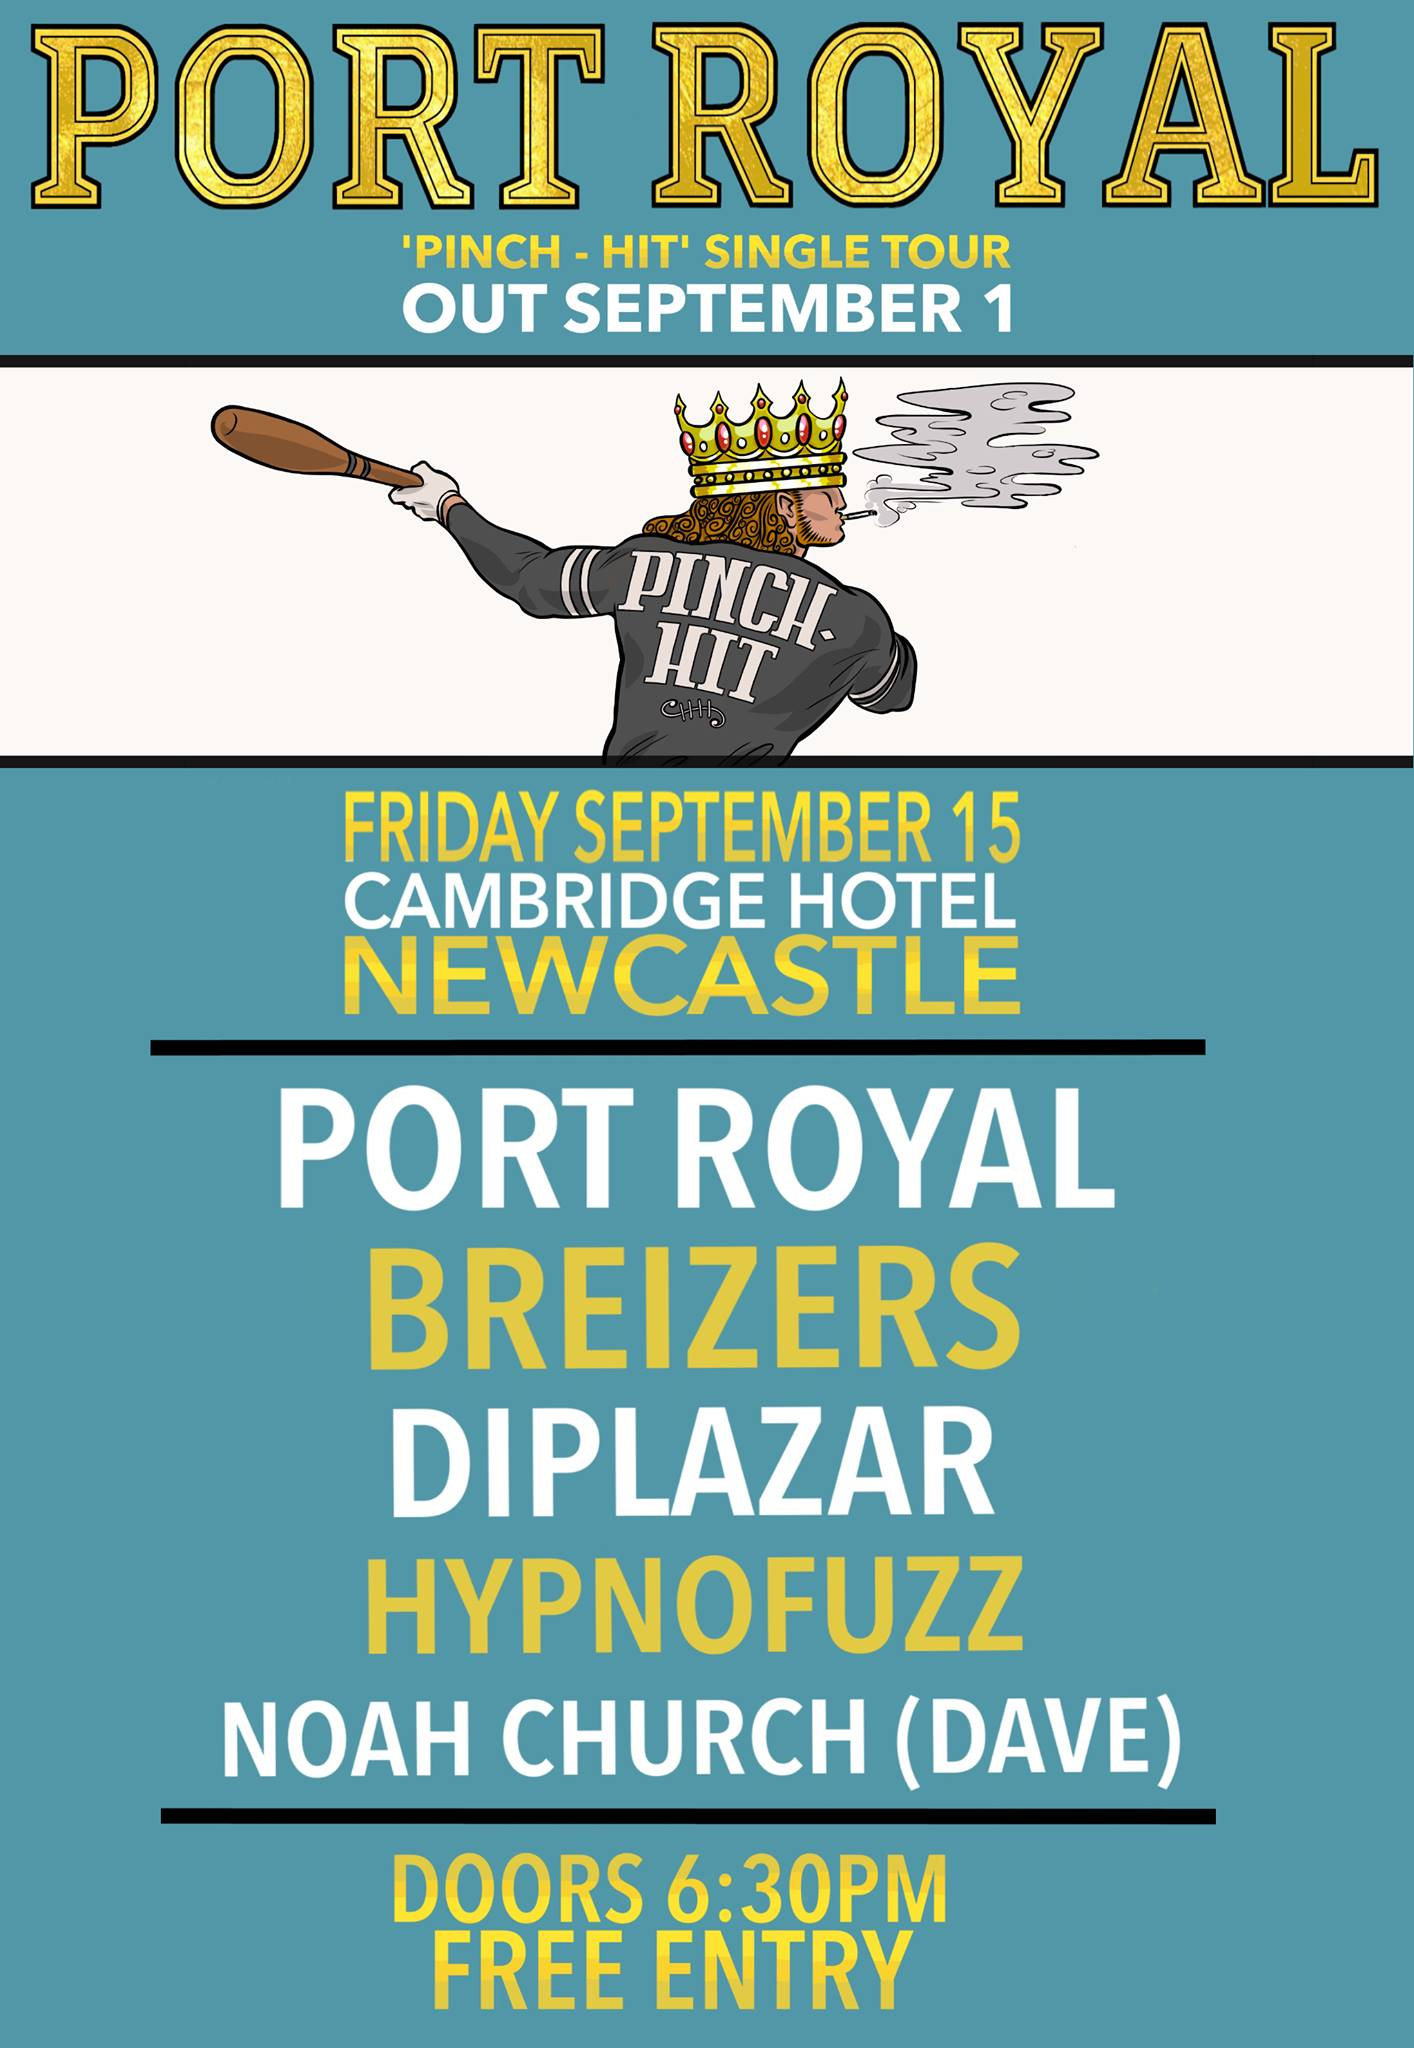 port royal newcastle cambridge hotel